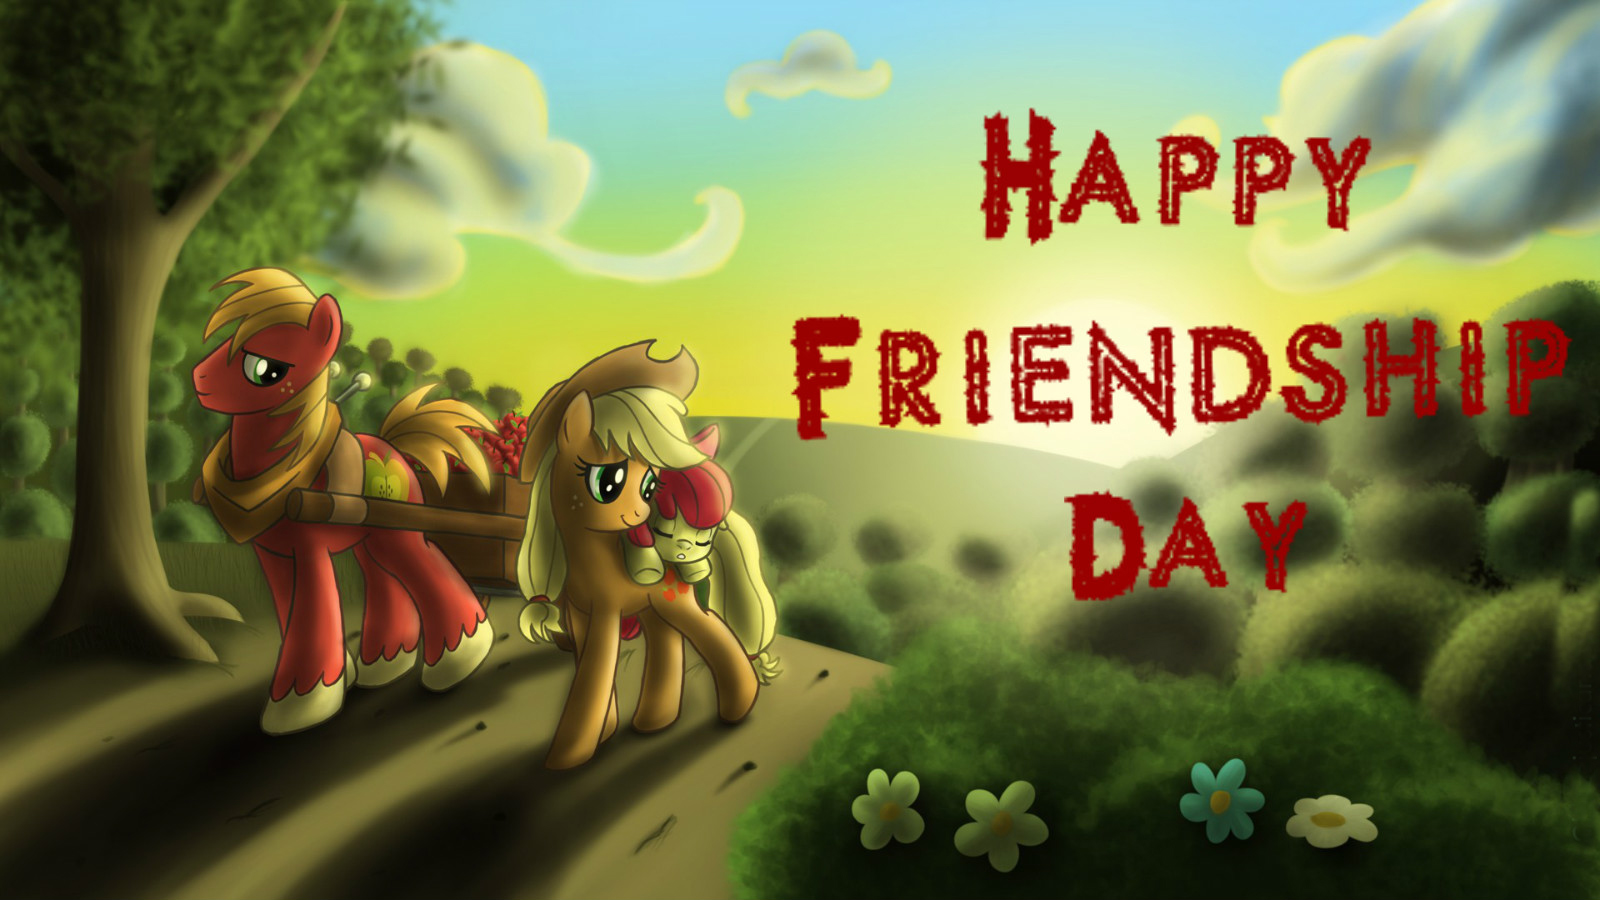 happy friendship day wallpapers images download hd free pics